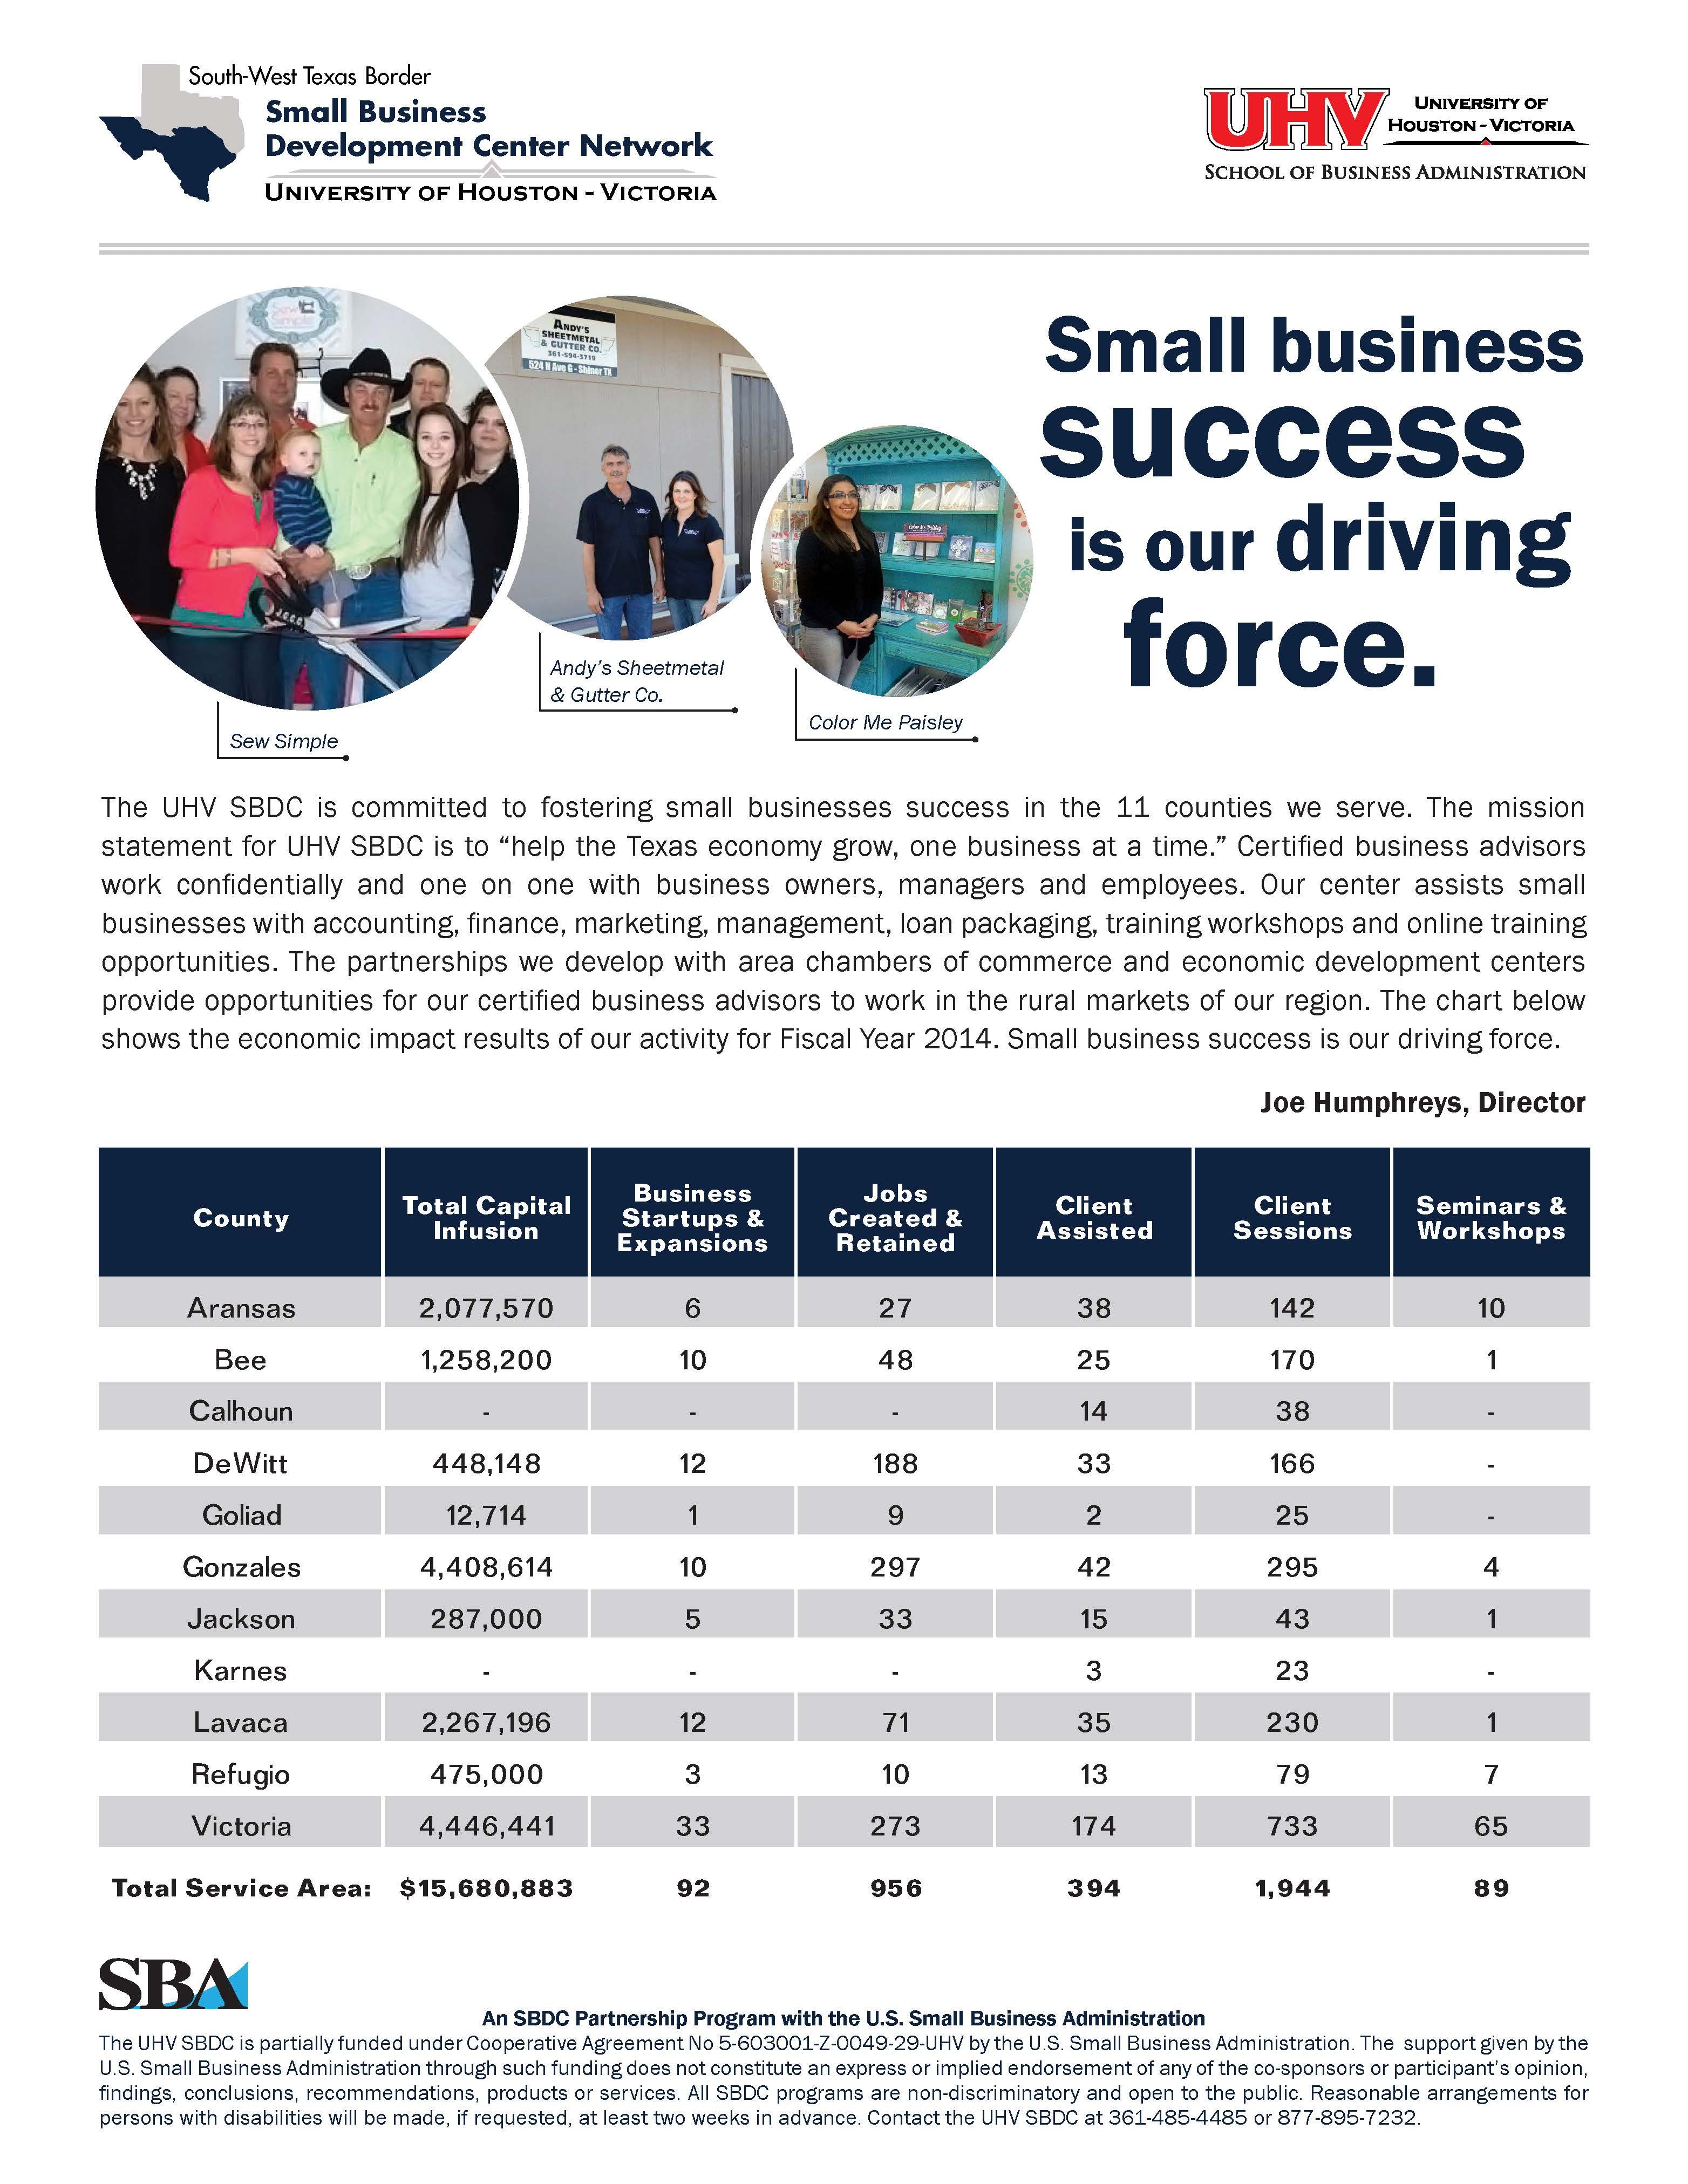 Impact of UHV SBDC.  Our certified business advisors offer no-cost, confidential assistance to small business every day.  http://sbdc.uhv.edu